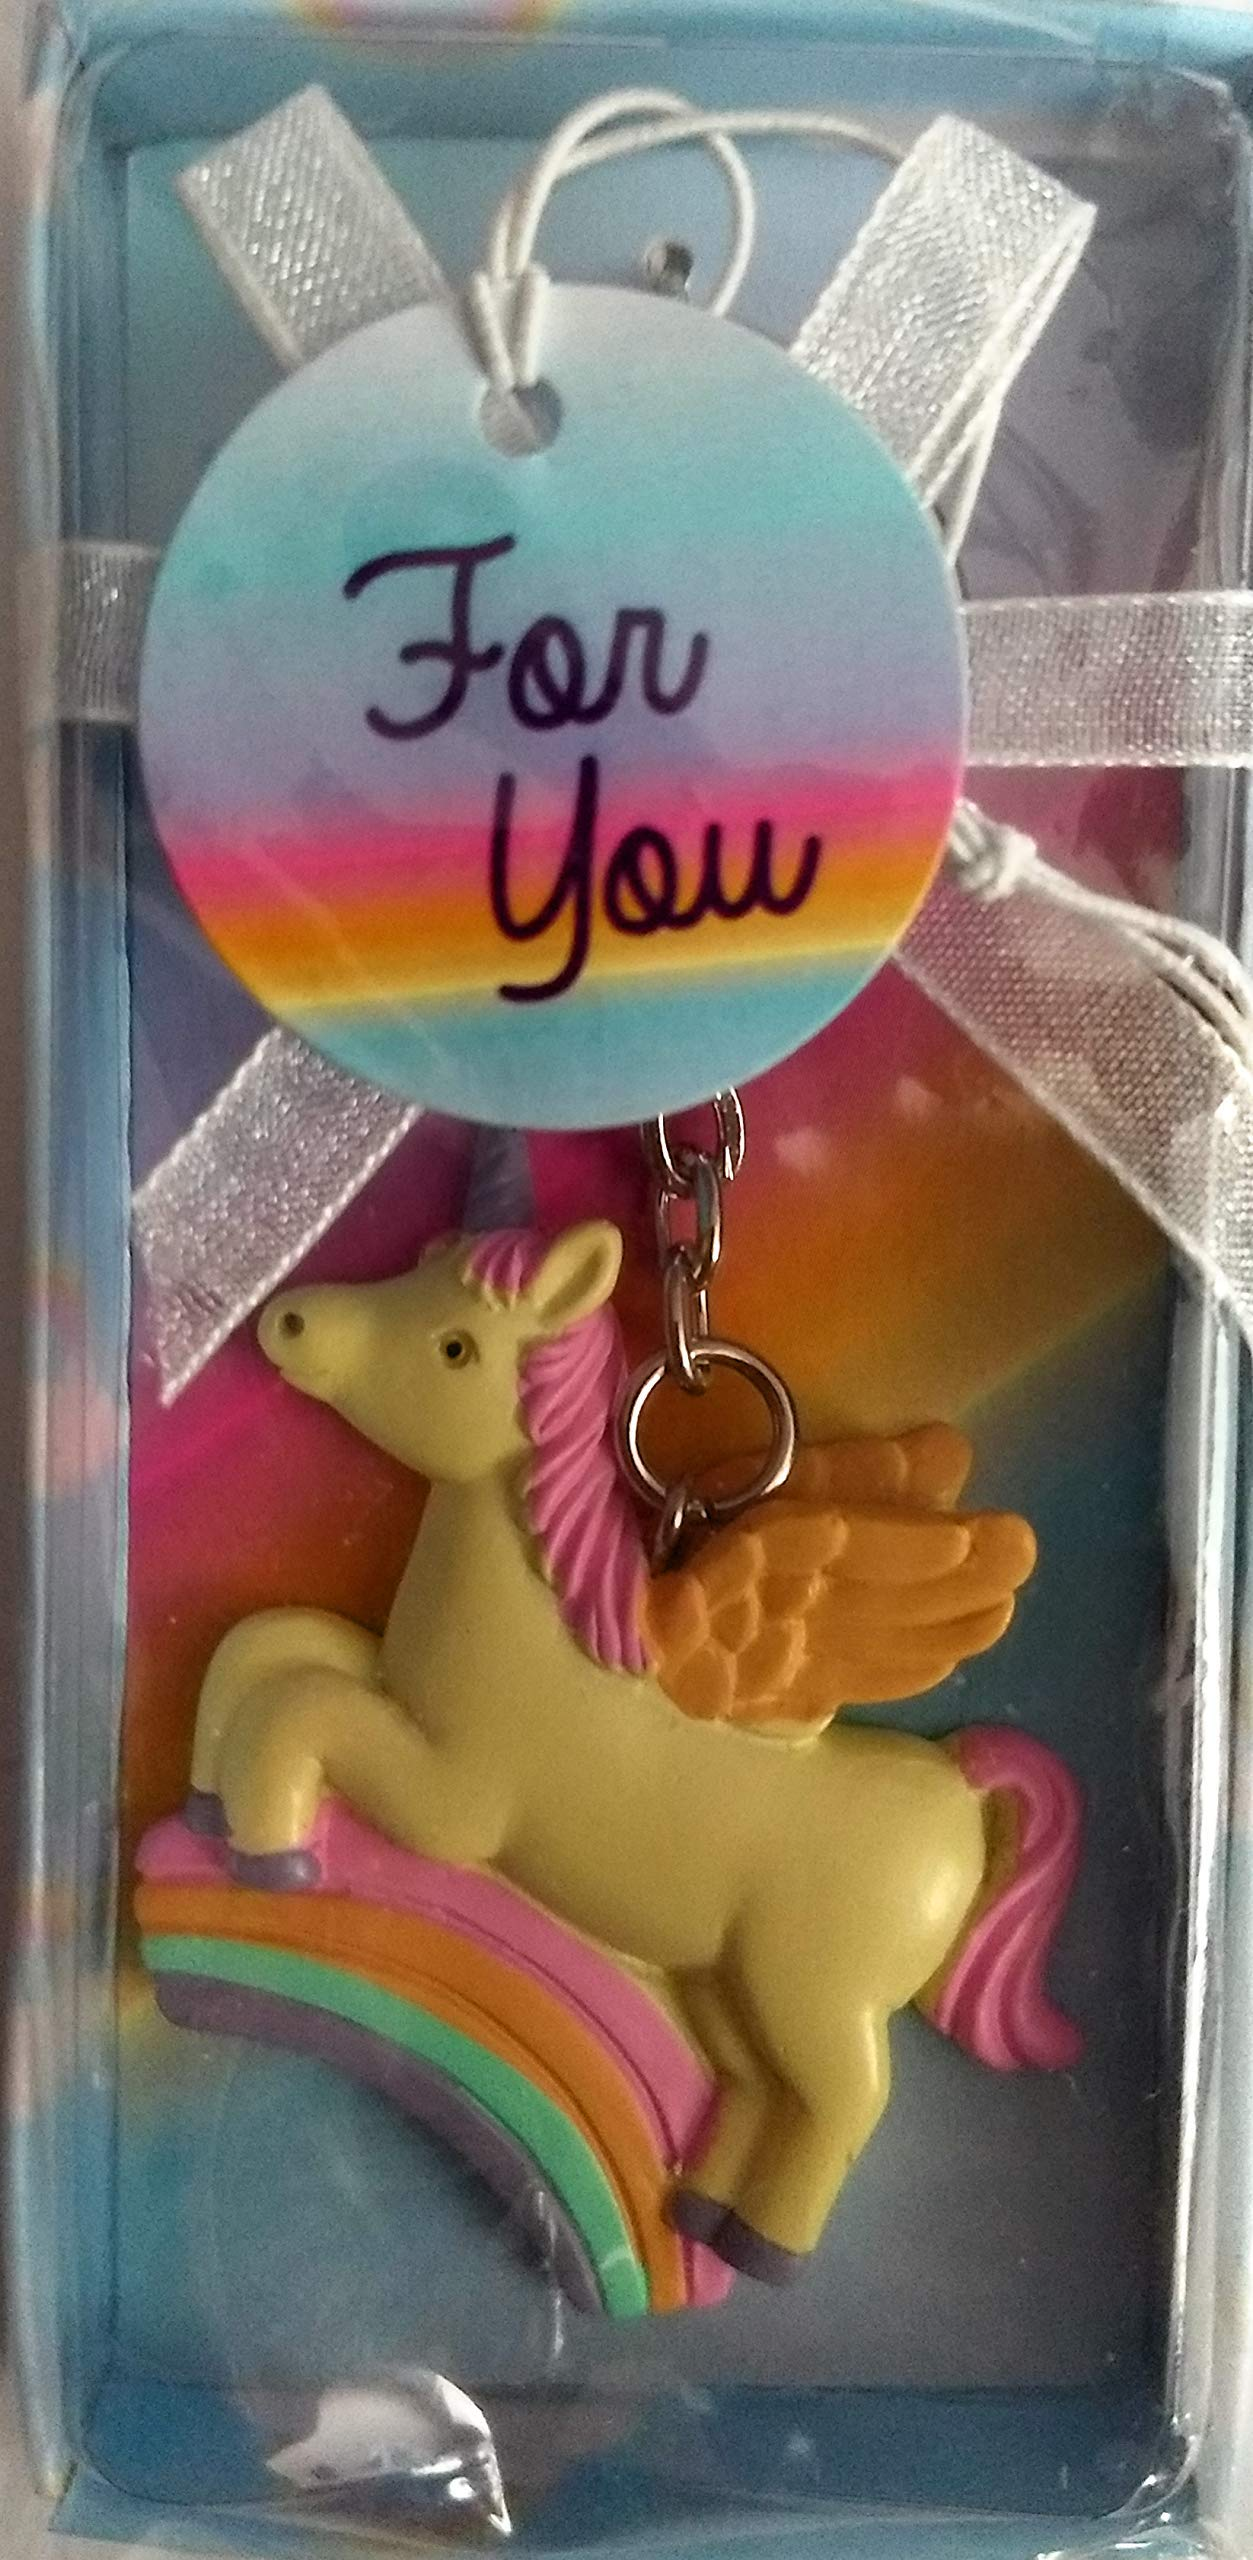 Poopsie Slime Surprise, Girls Toys Include Unicorn Keychain and Lipgloss Bundle 3 Items (Flavored) by bigdream (Image #3)